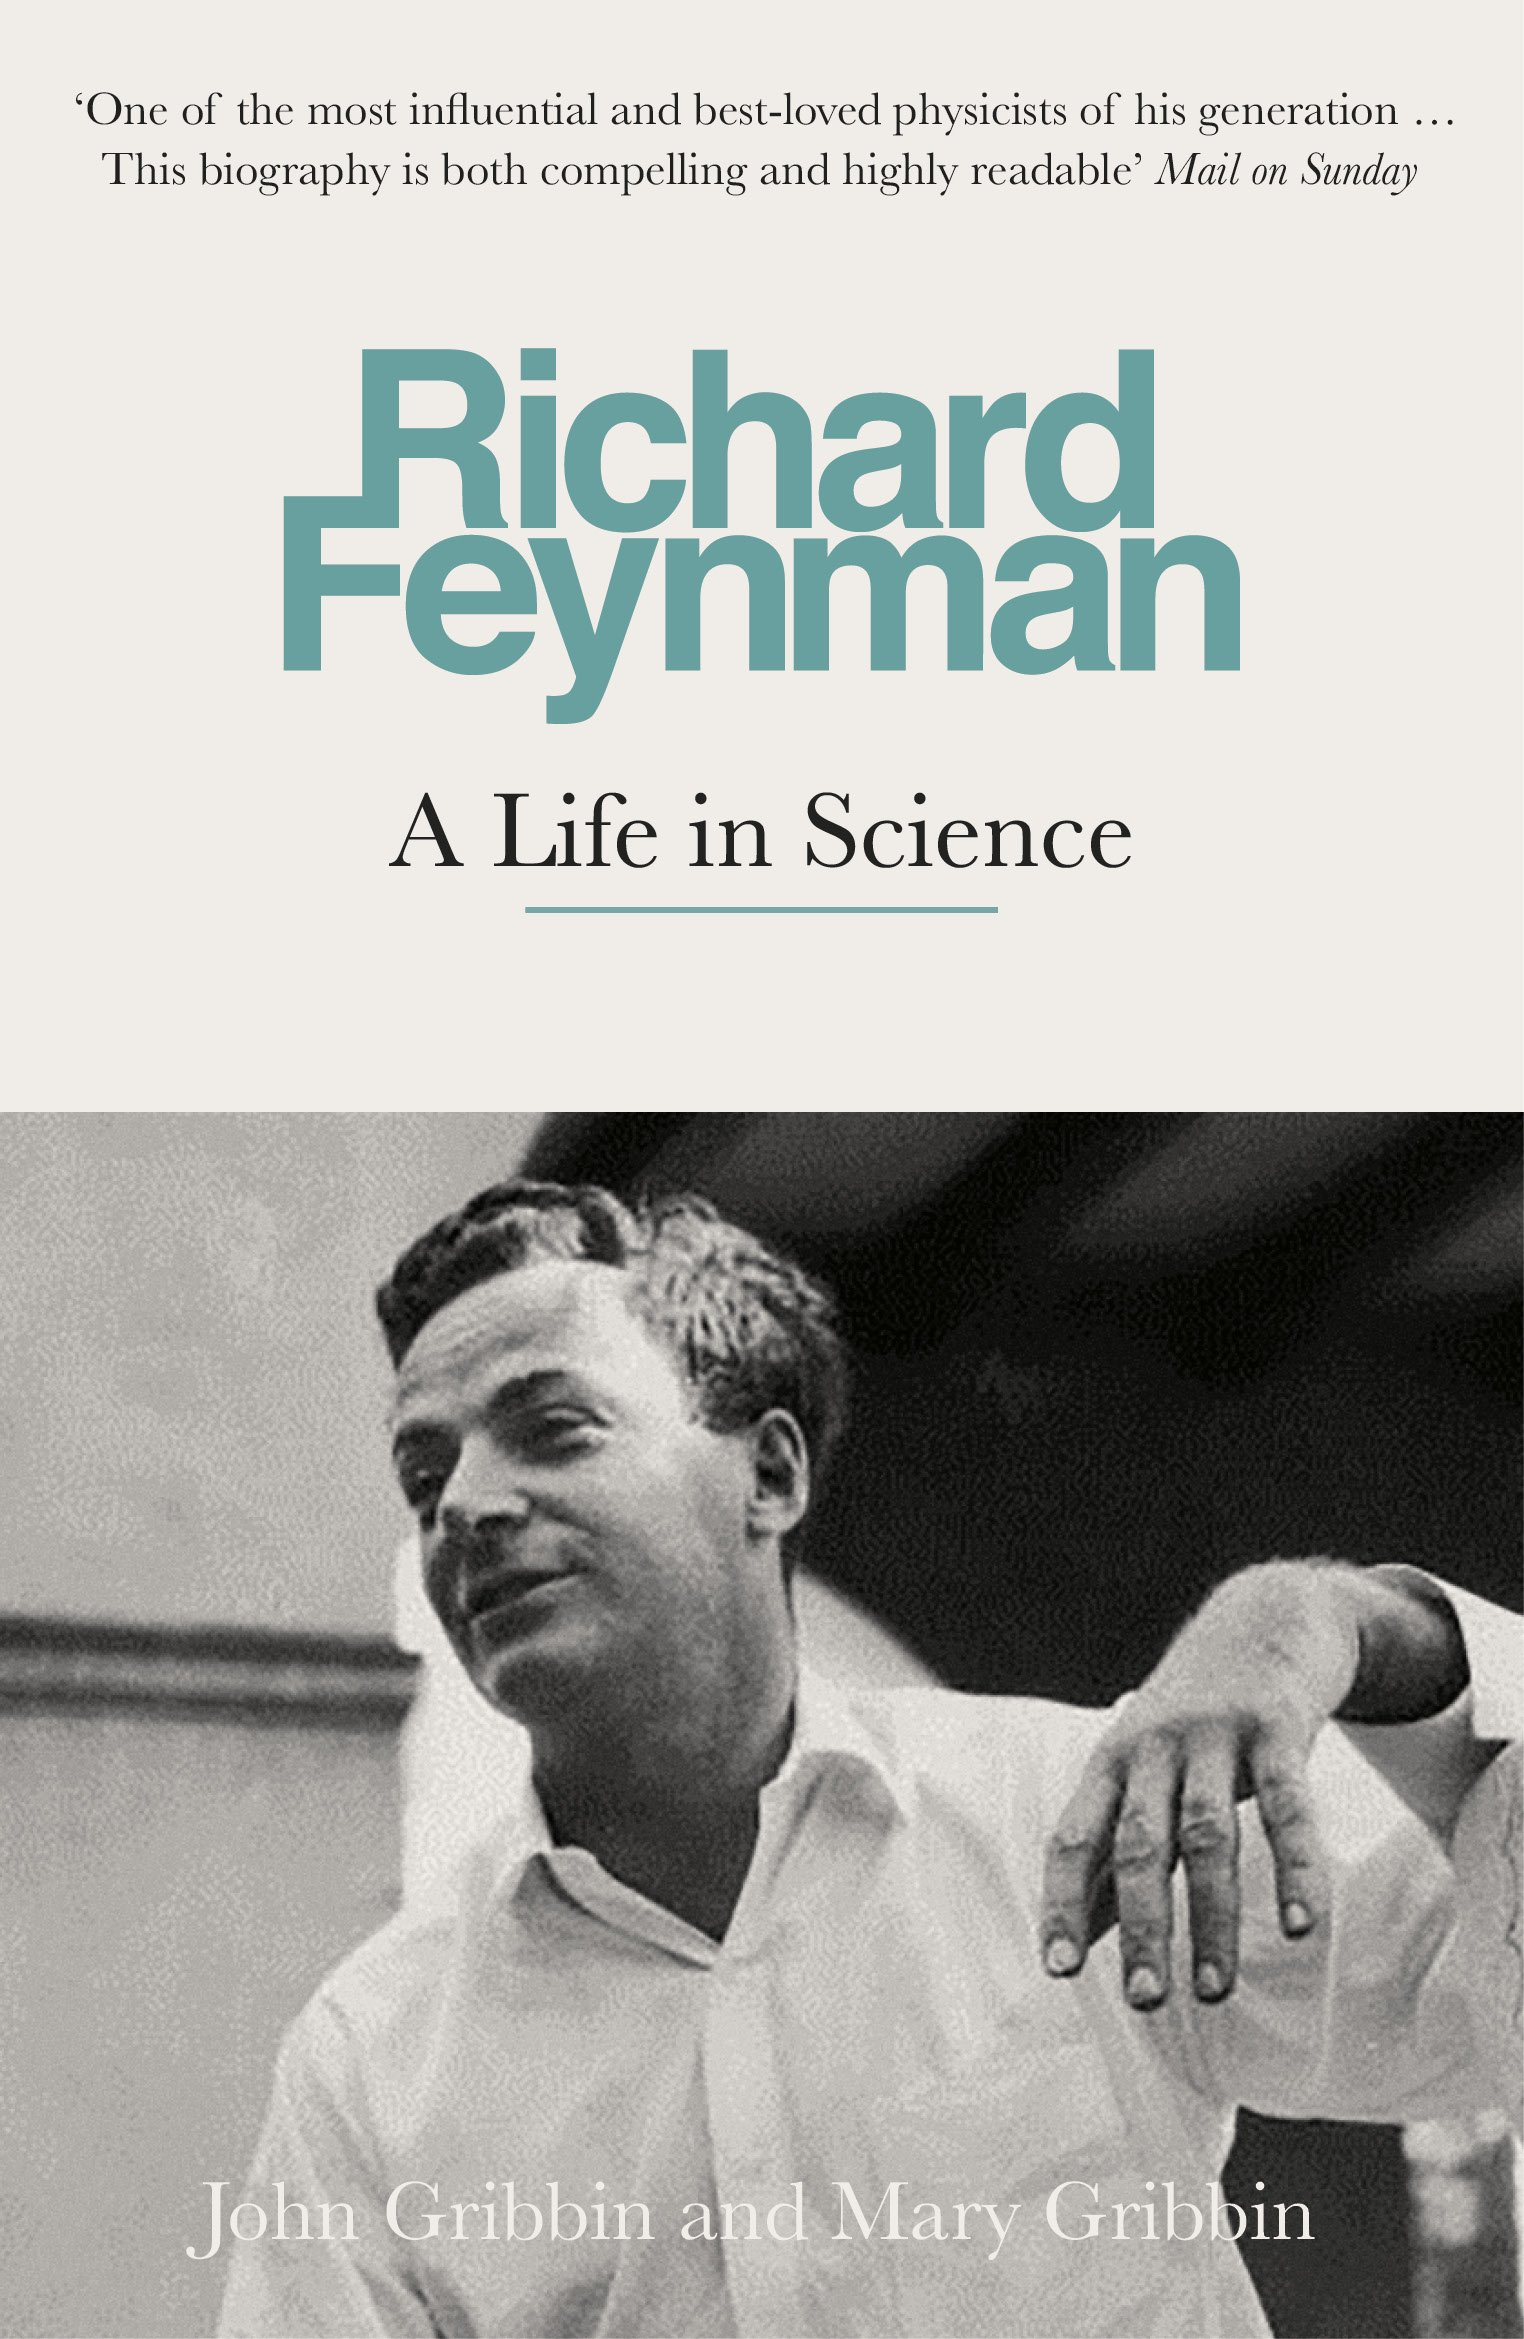 Buy Richard Feynman: A Life in Science Book Online at Low Prices in India |  Richard Feynman: A Life in Science Reviews & Ratings - Amazon.in